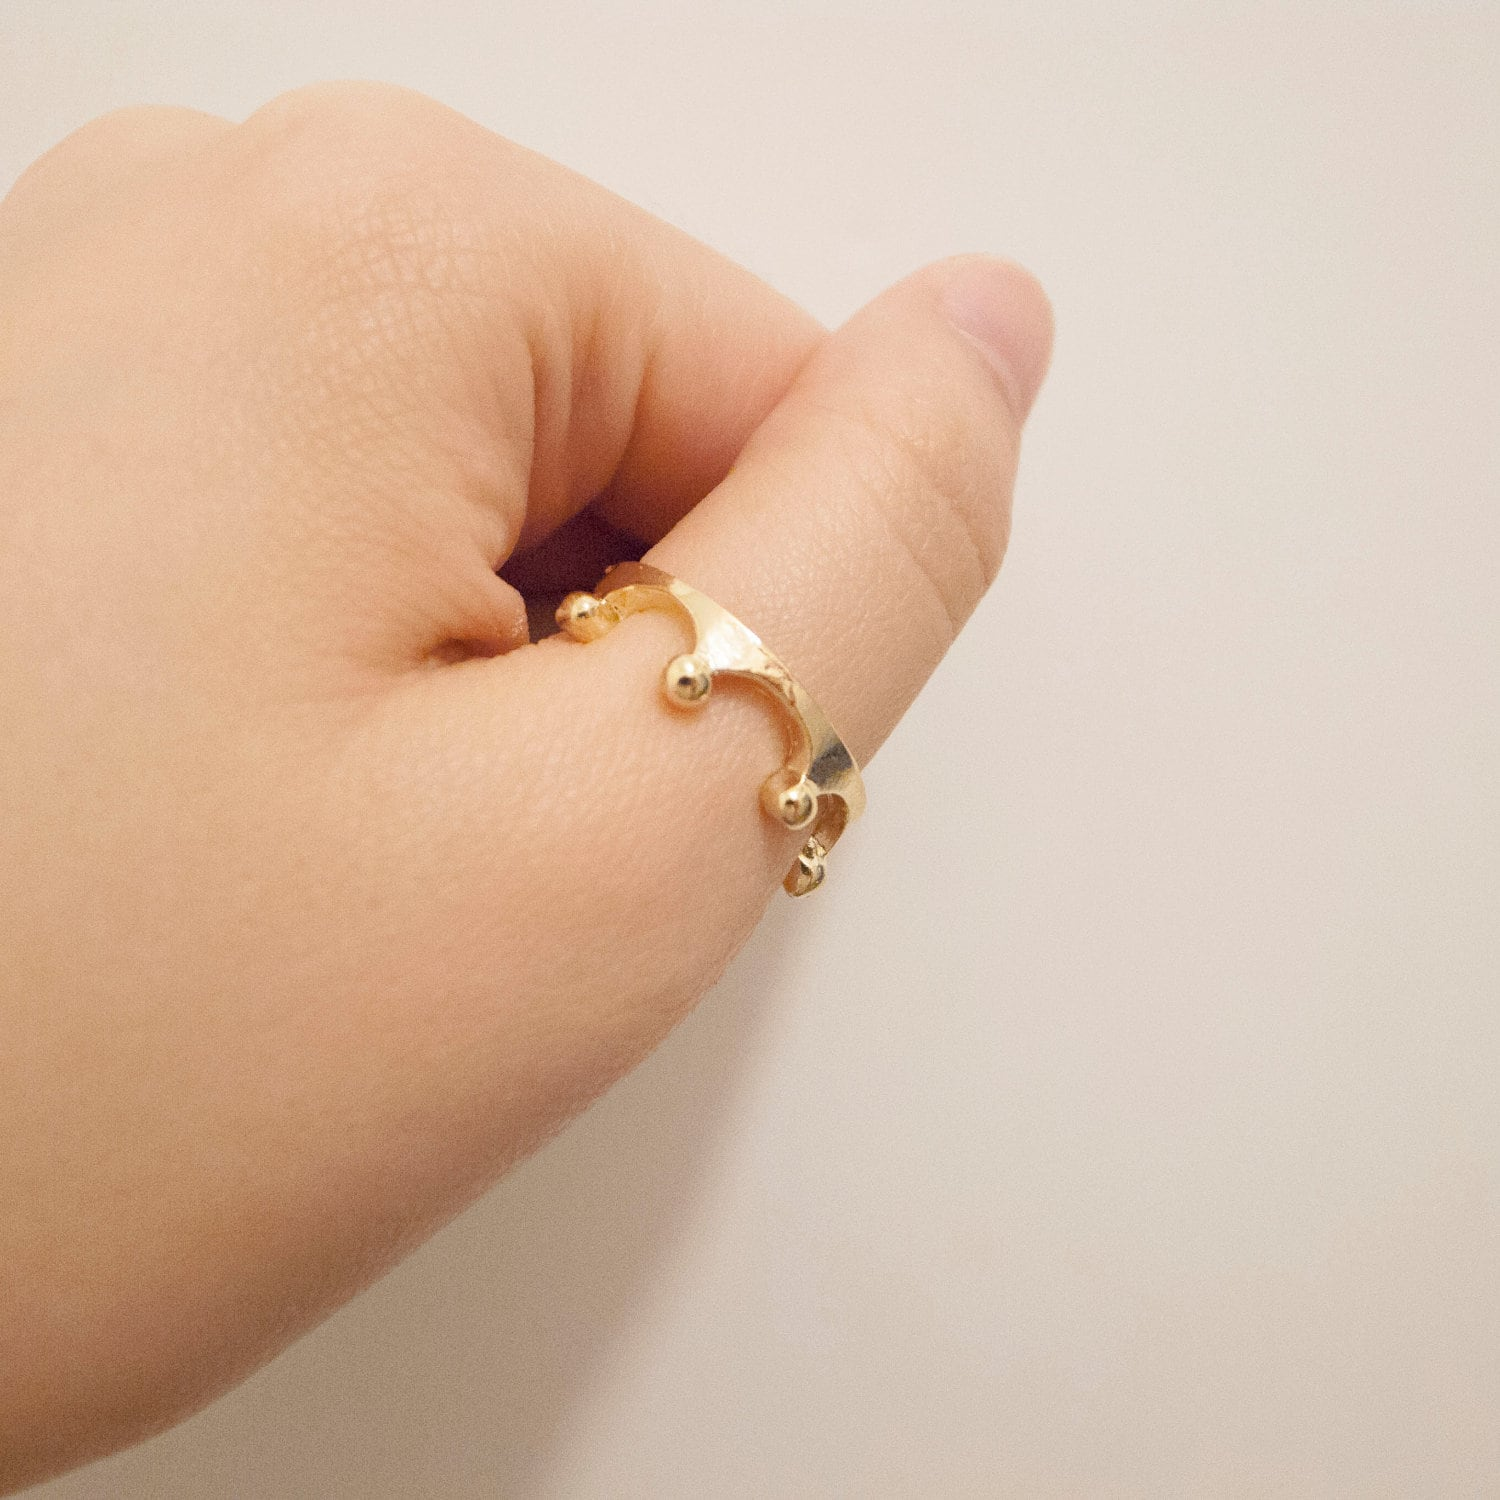 Gold / Silver Plated Crown Ring, thumb ring, crown necklace